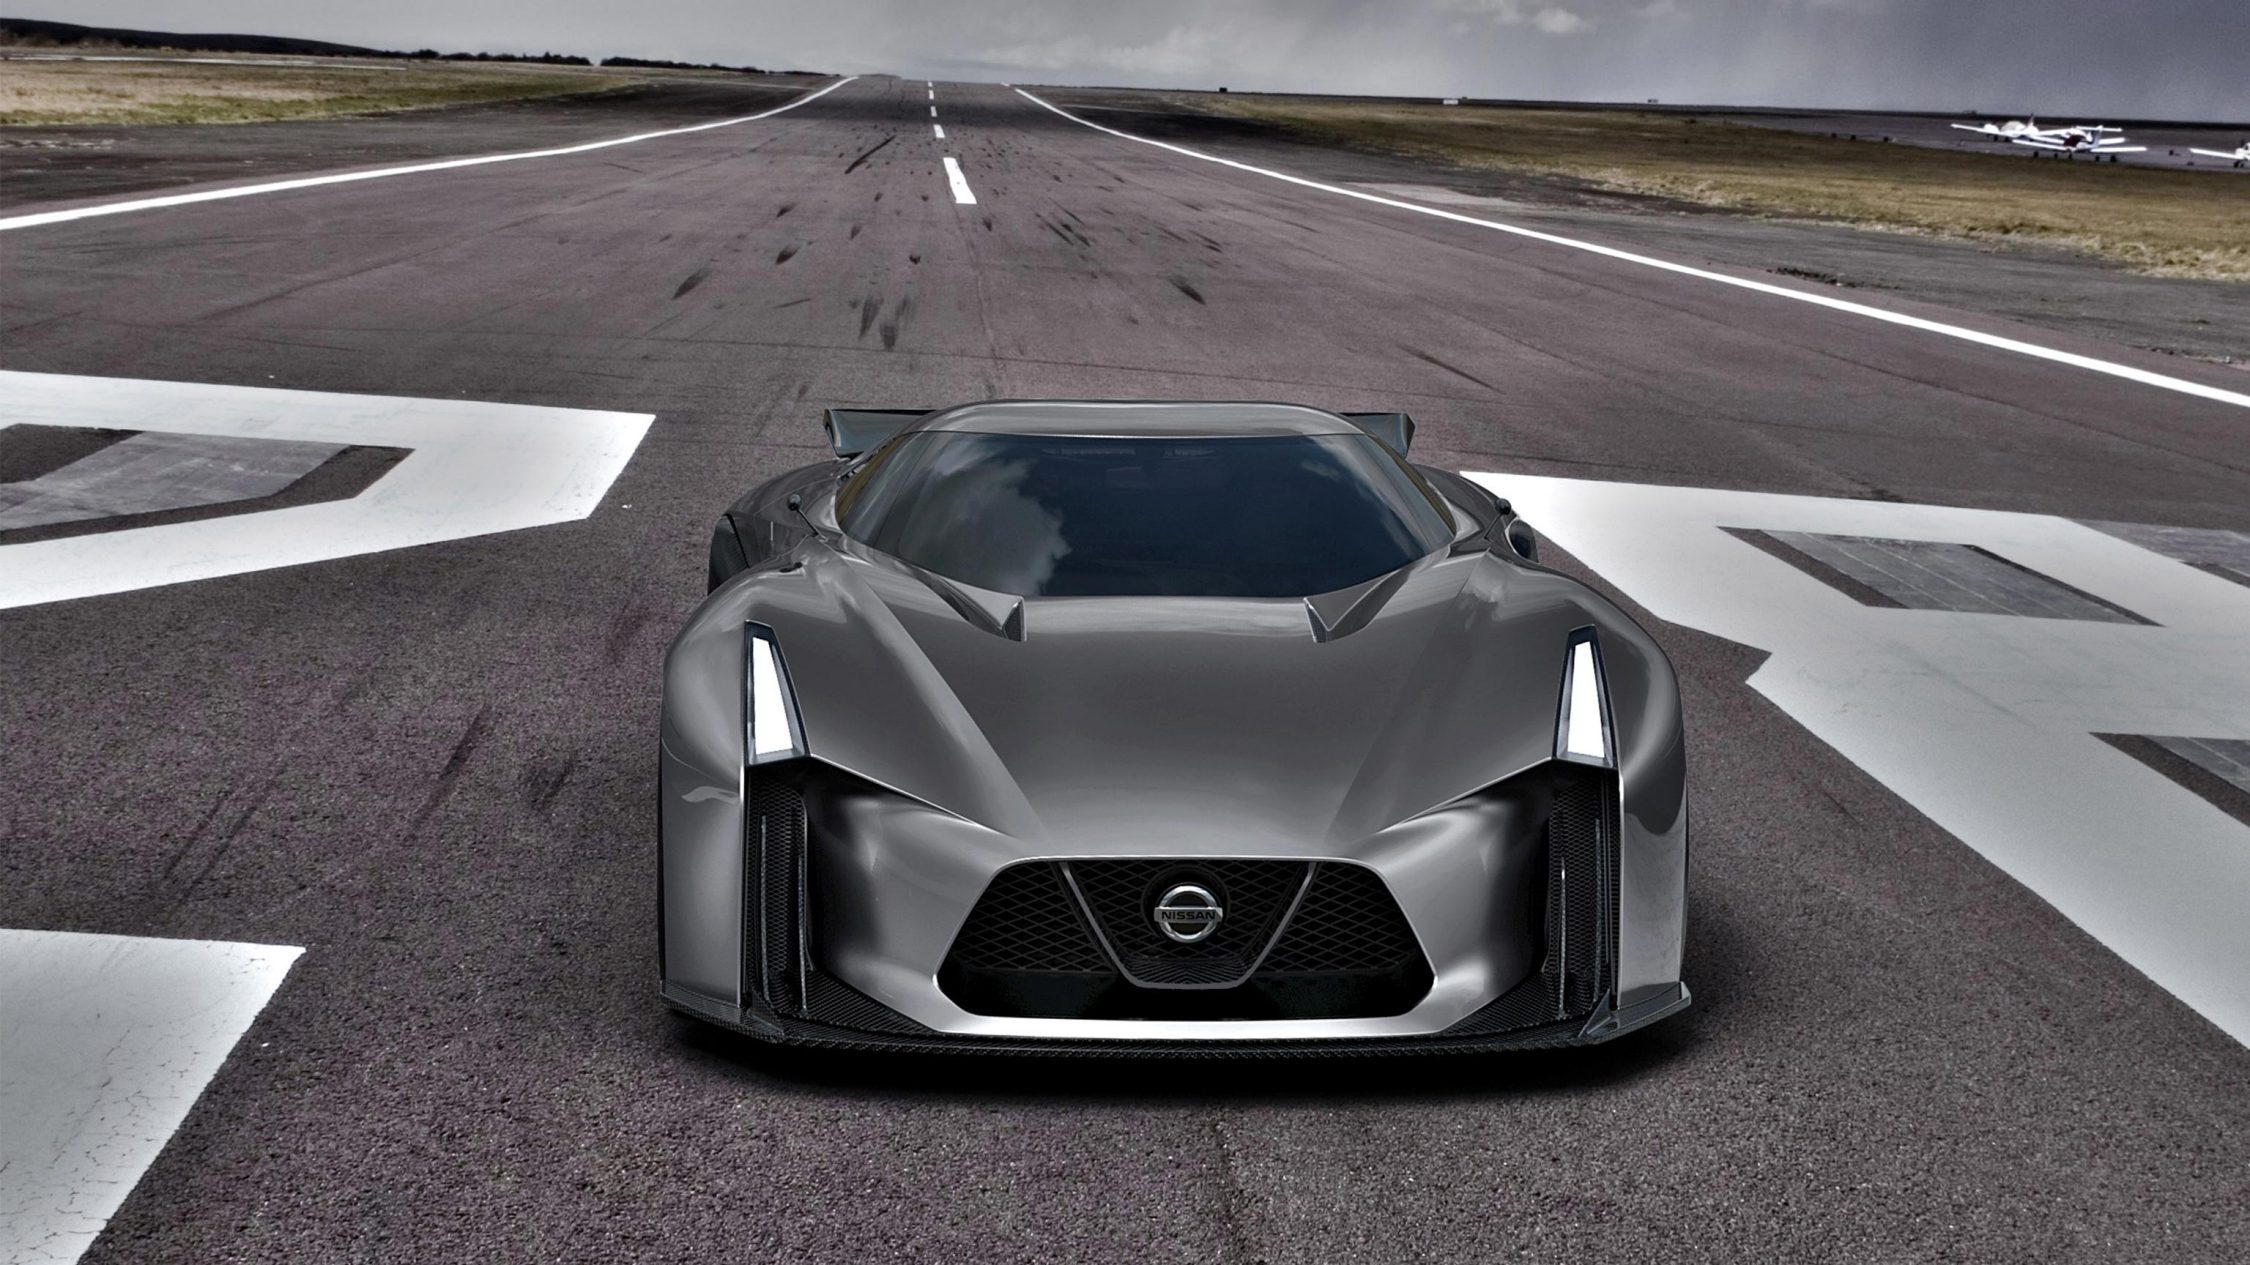 Experience Nissan - Concept car - 2020 Vision Gran Turismo - front view